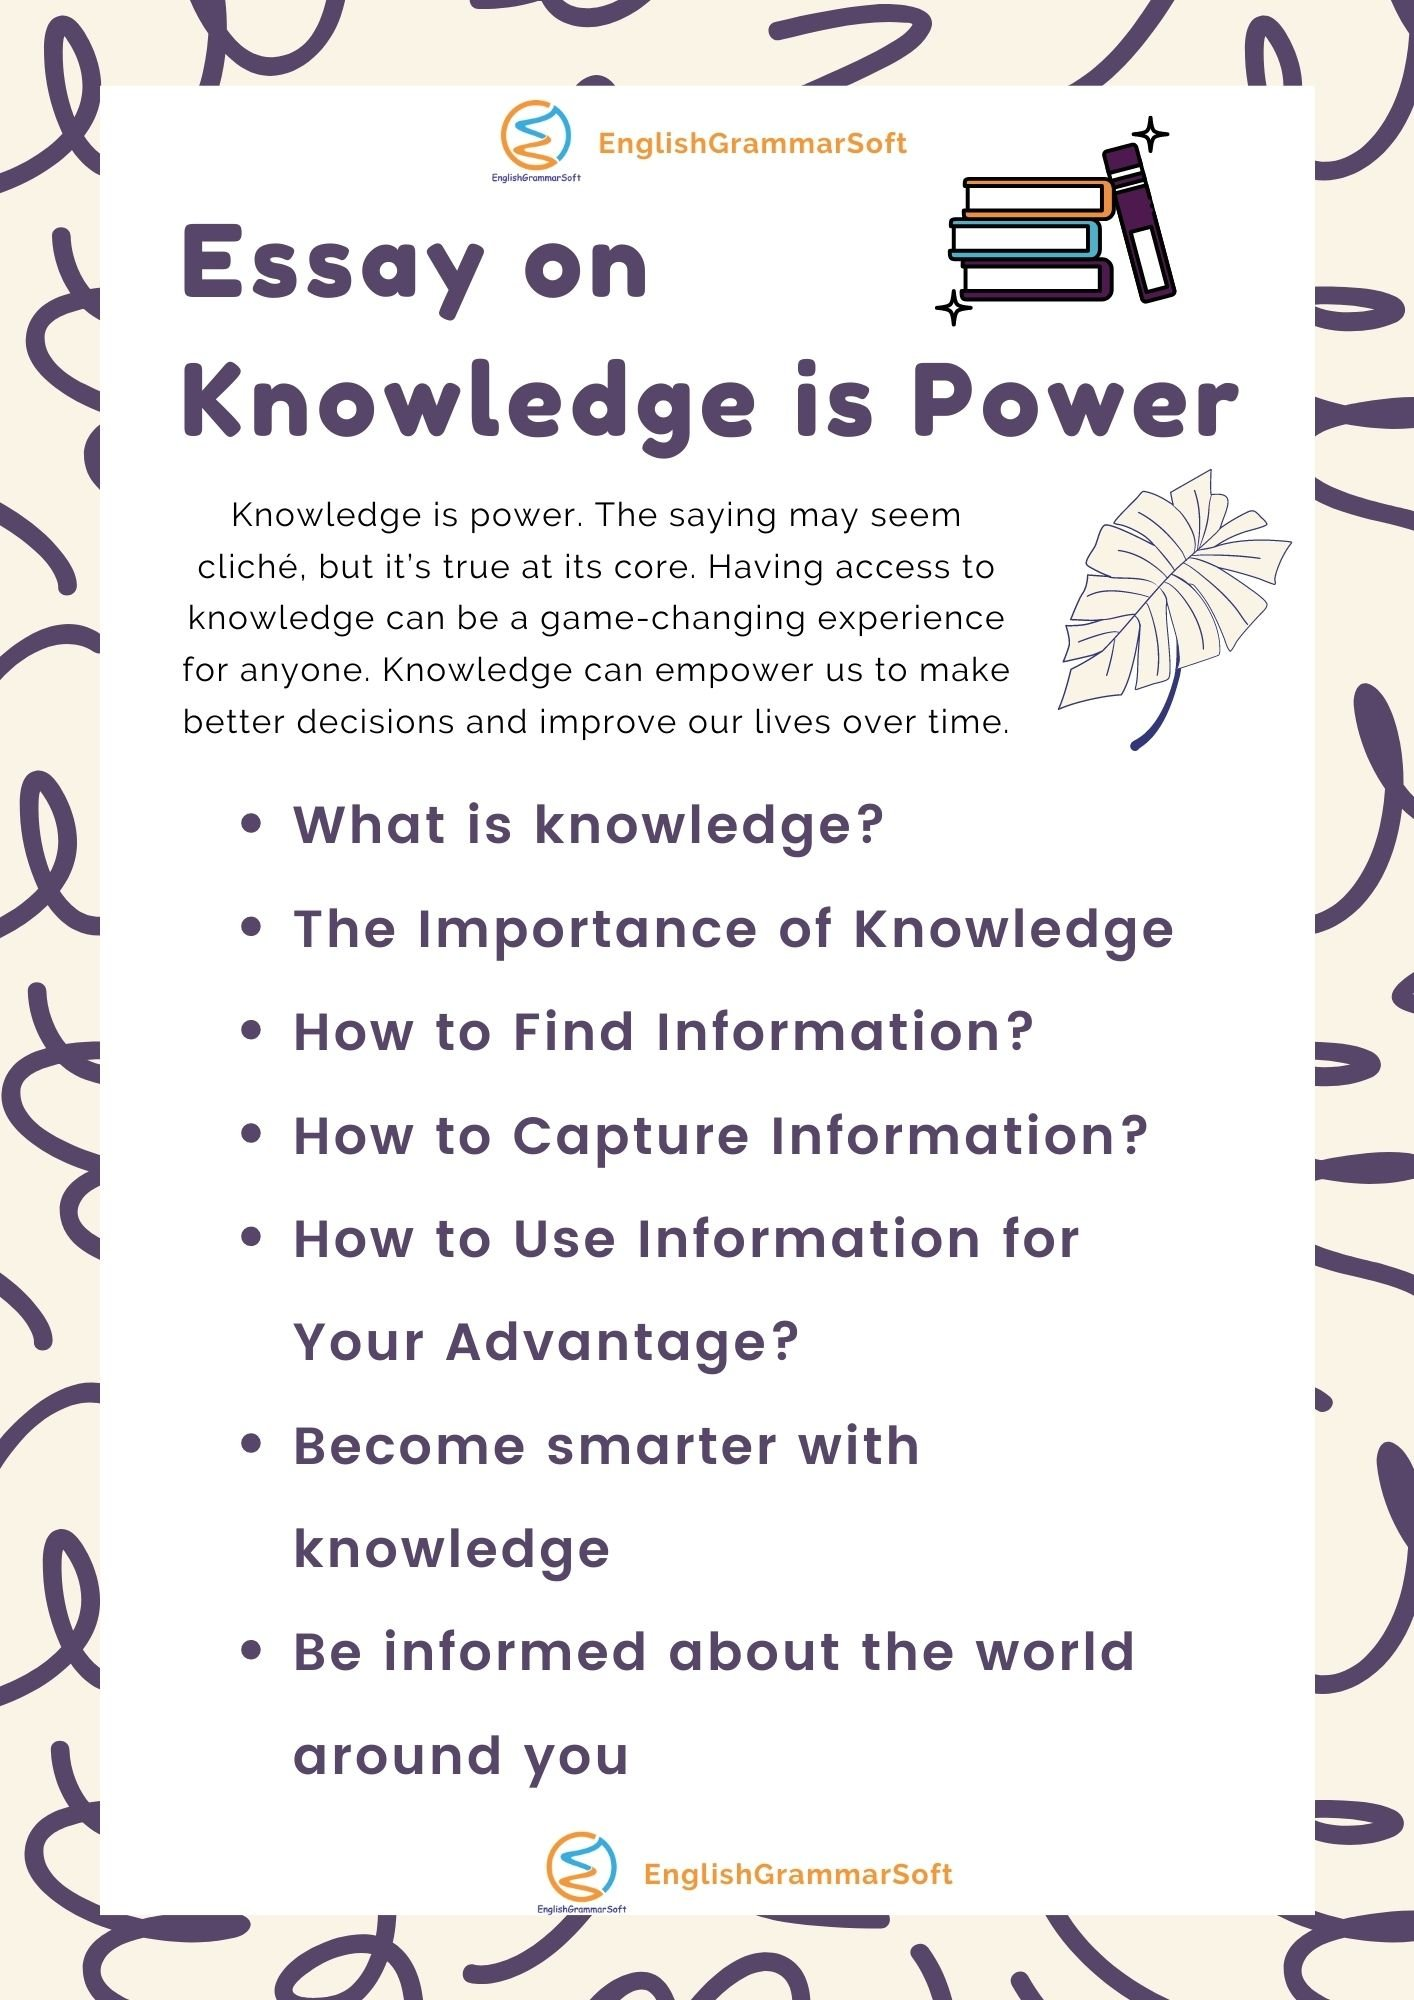 Essay on Knowledge is Power